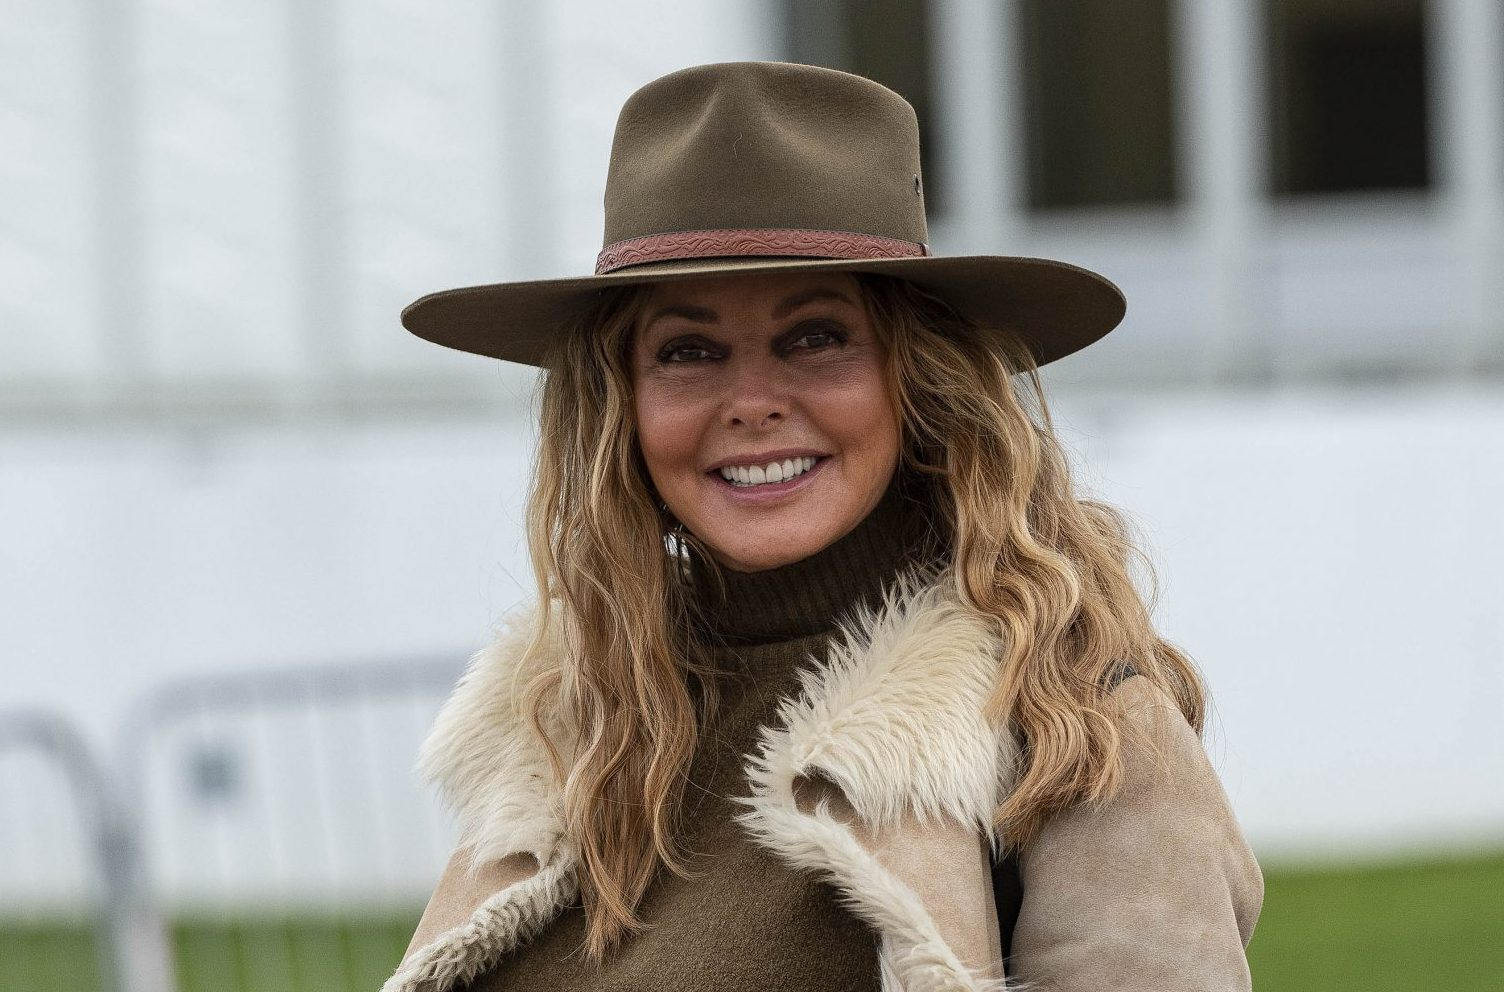 Carol Vorderman stuns fans as she shows off 'new look'